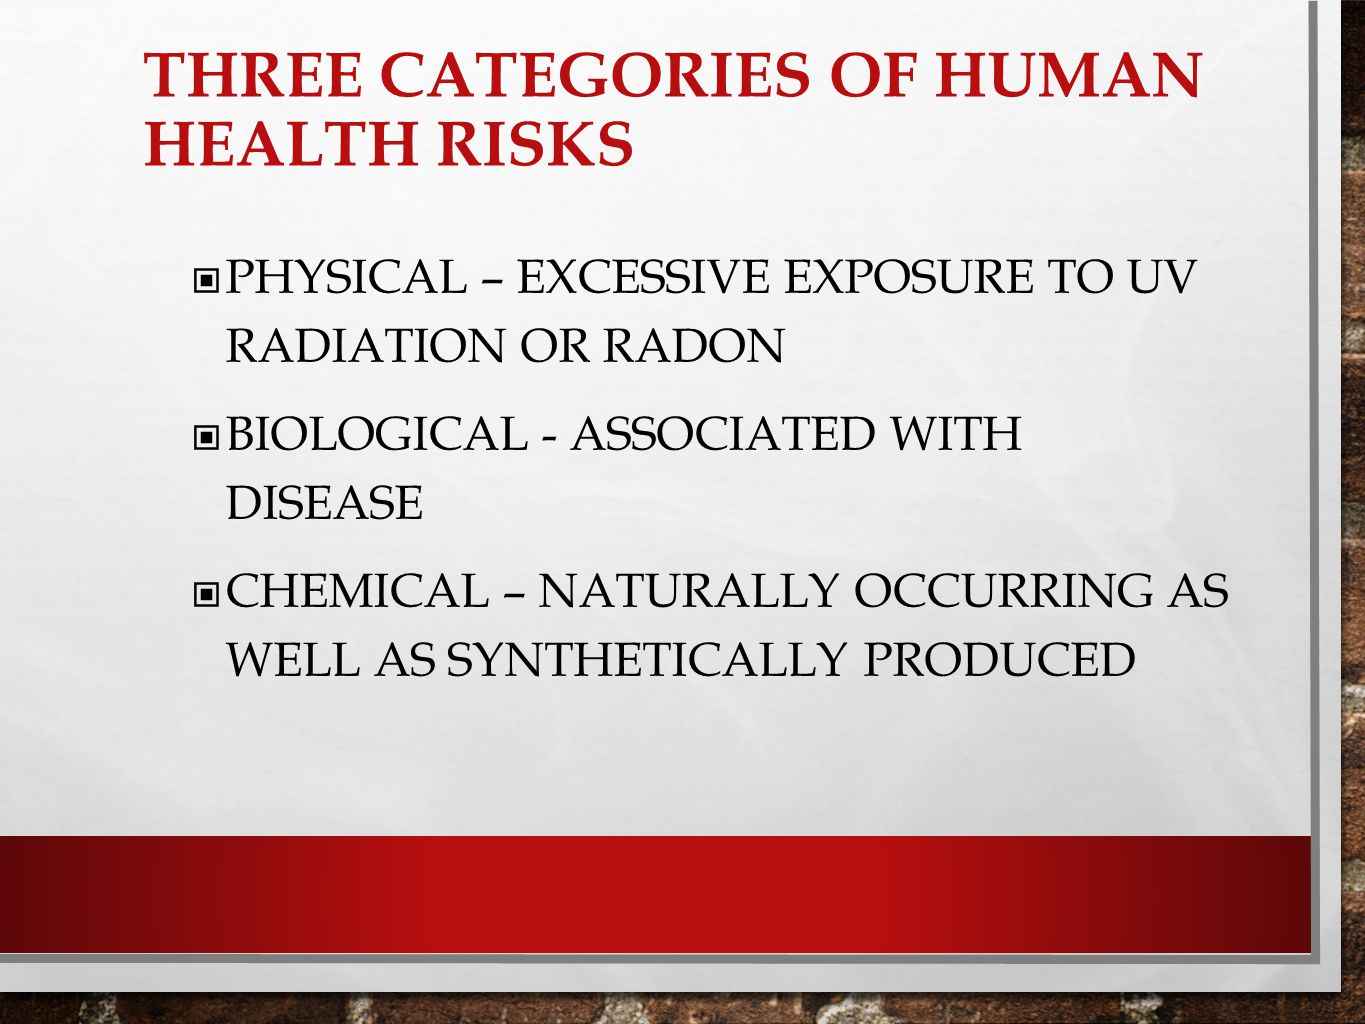 Three categories of human health risks